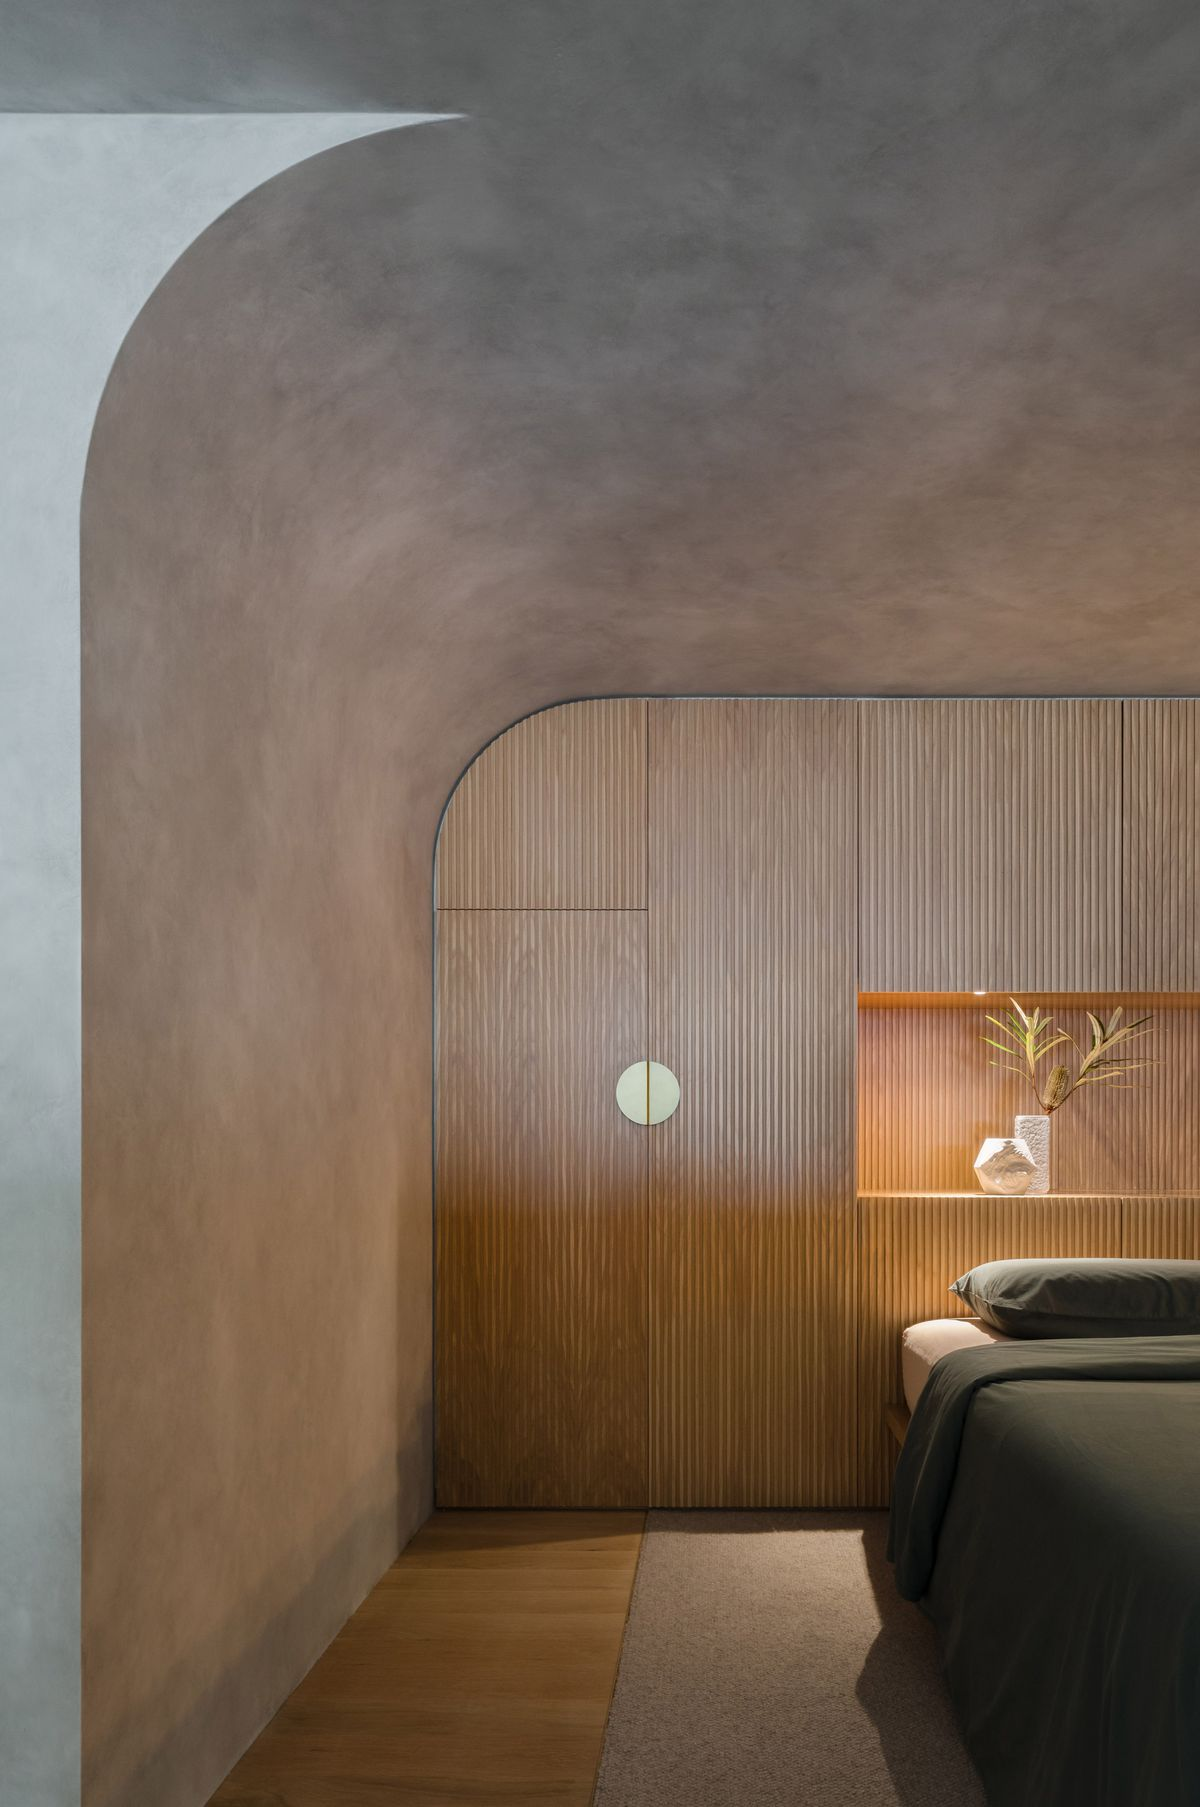 A bedroom area with concrete walls. There is a wooden headboard on one of the walls surrounding the bed.